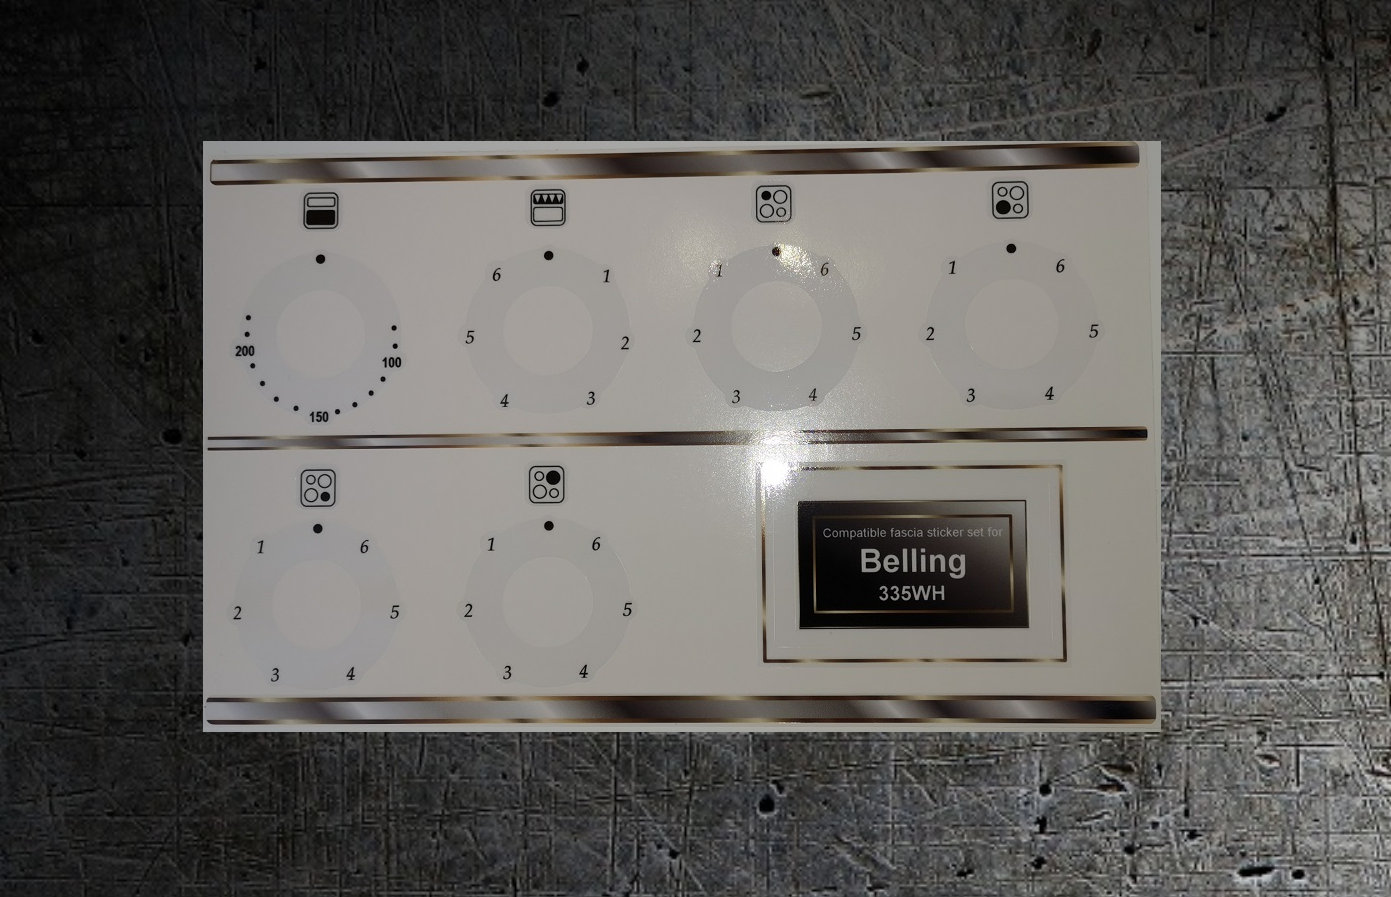 Belling 335WH electric oven compatible fascia sticker set.